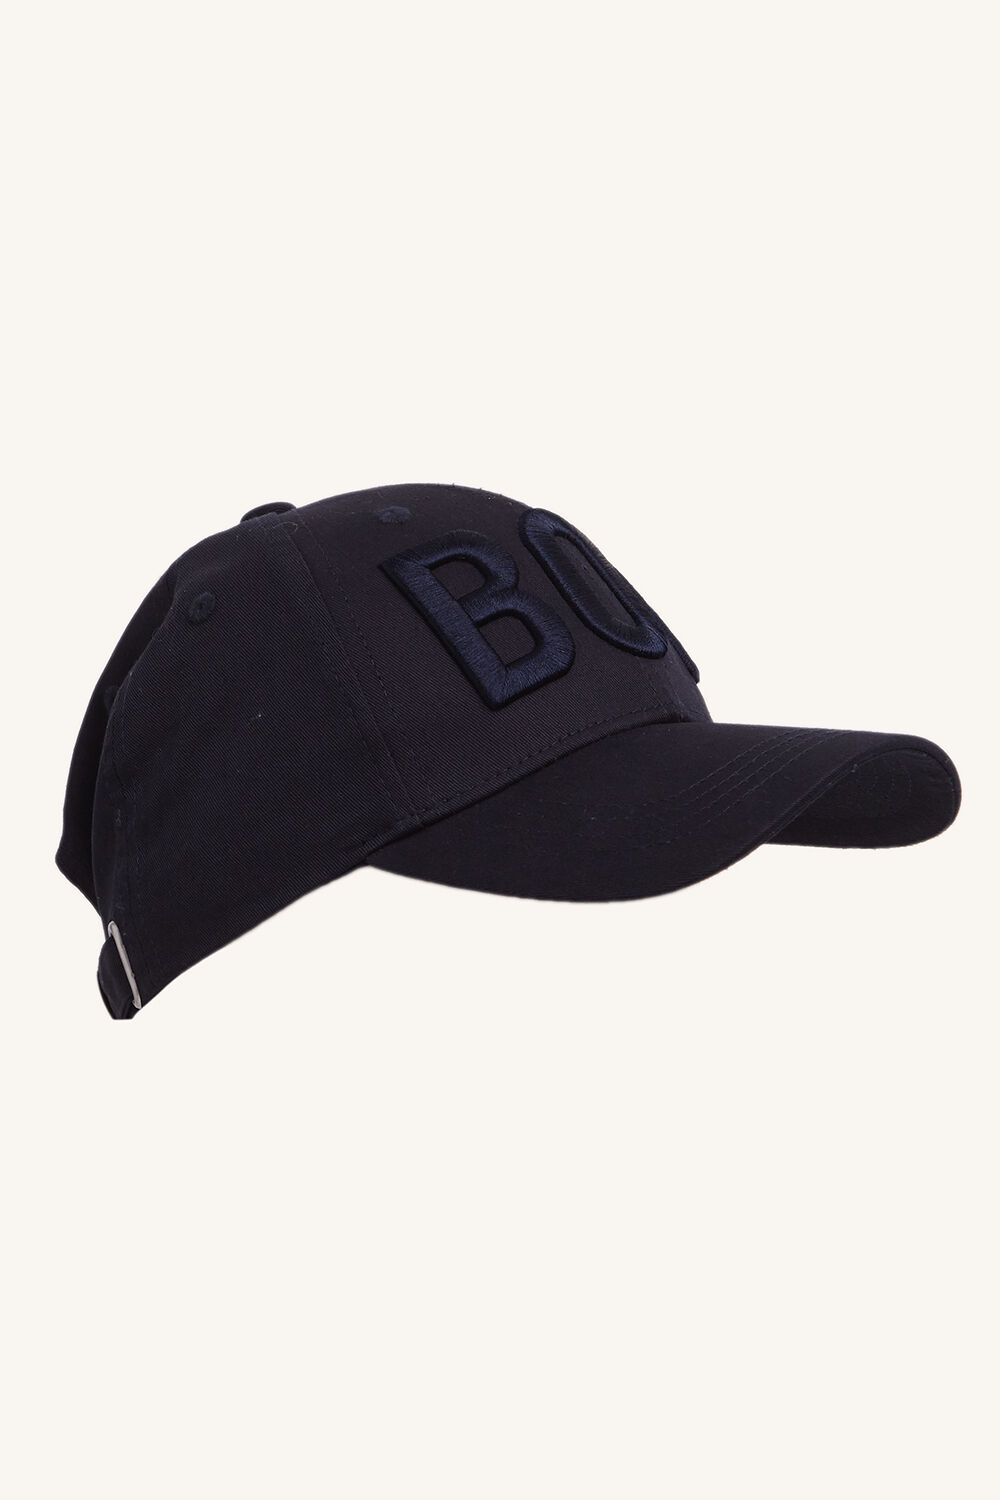 BOY CAP in colour BLACK IRIS